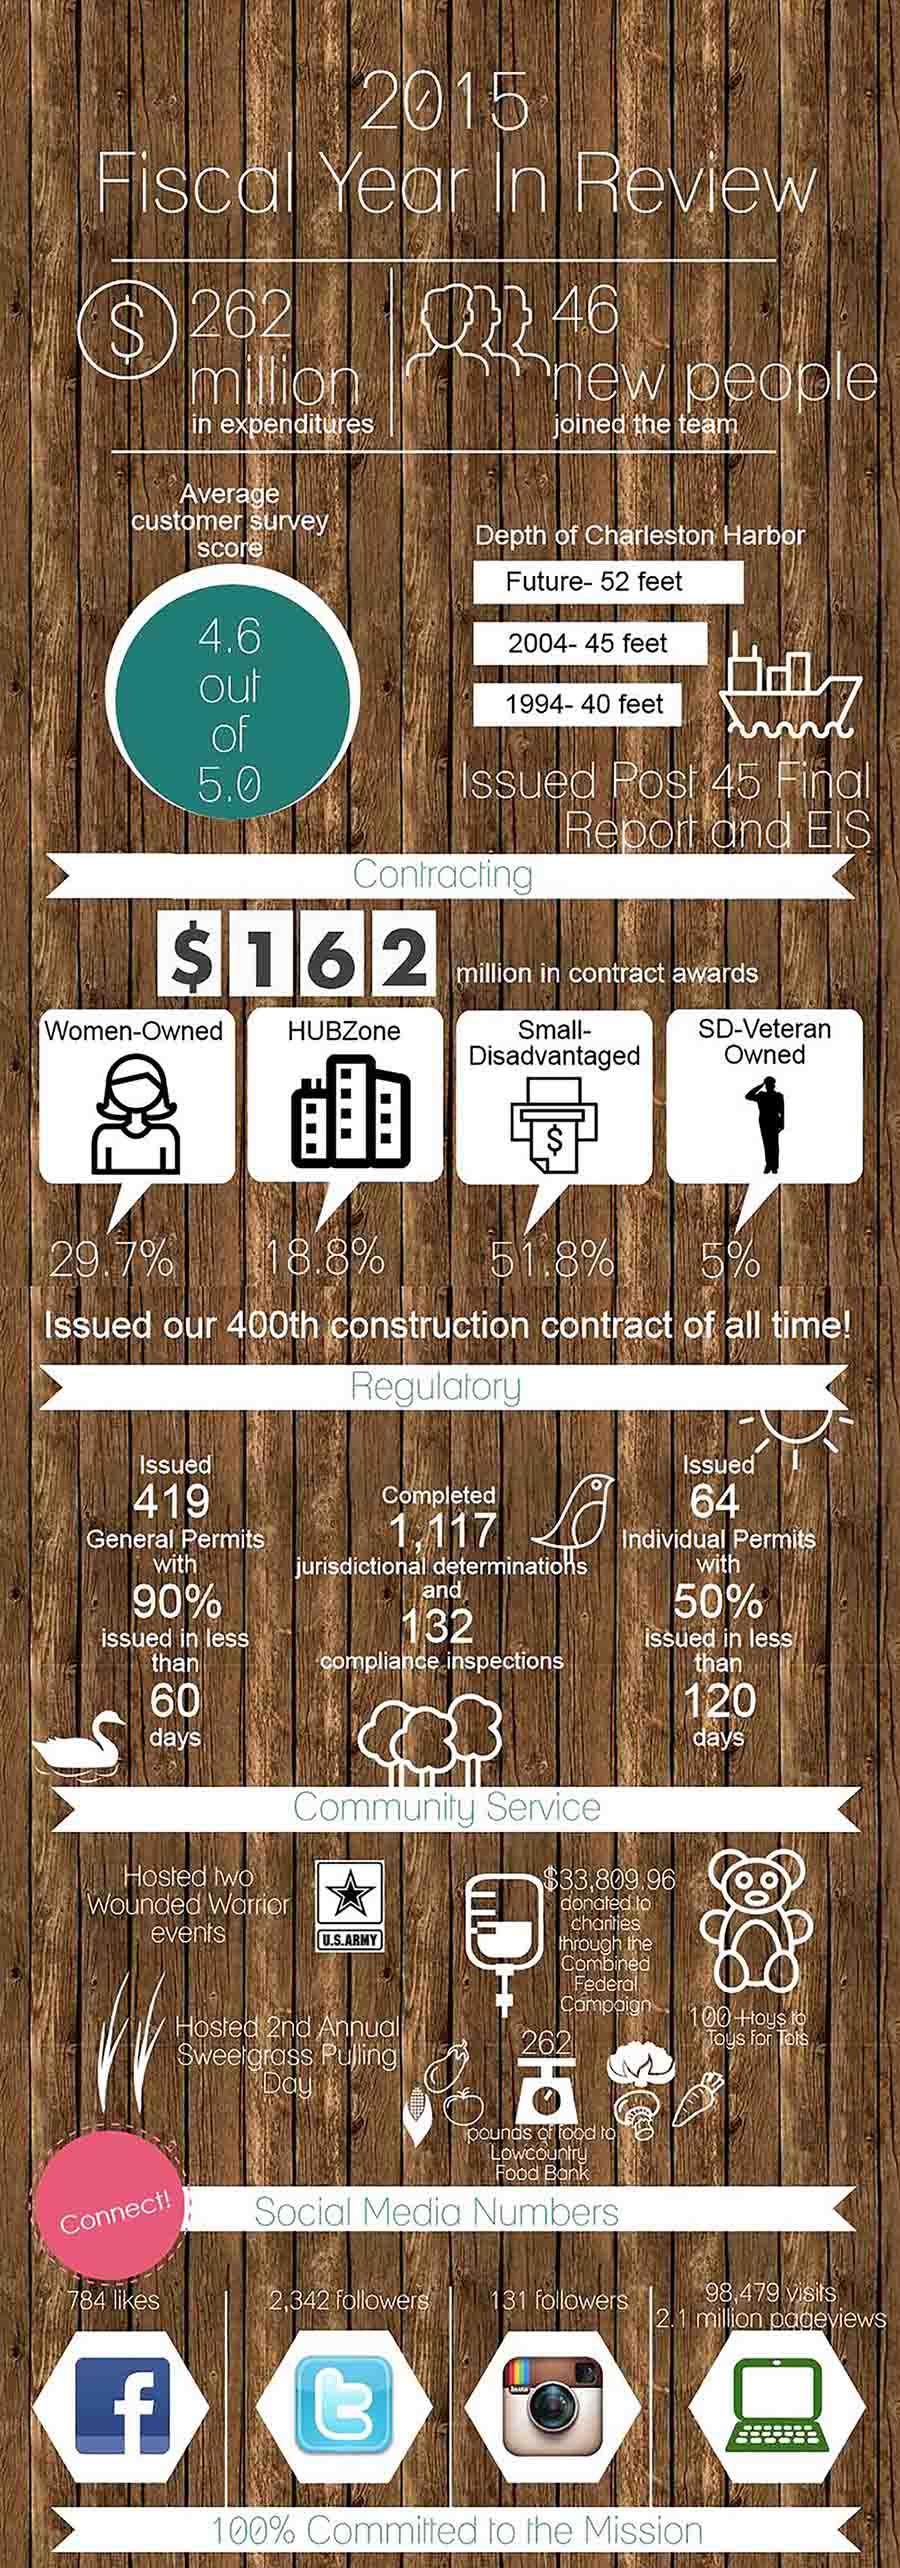 FY15 Year in Review Infographic